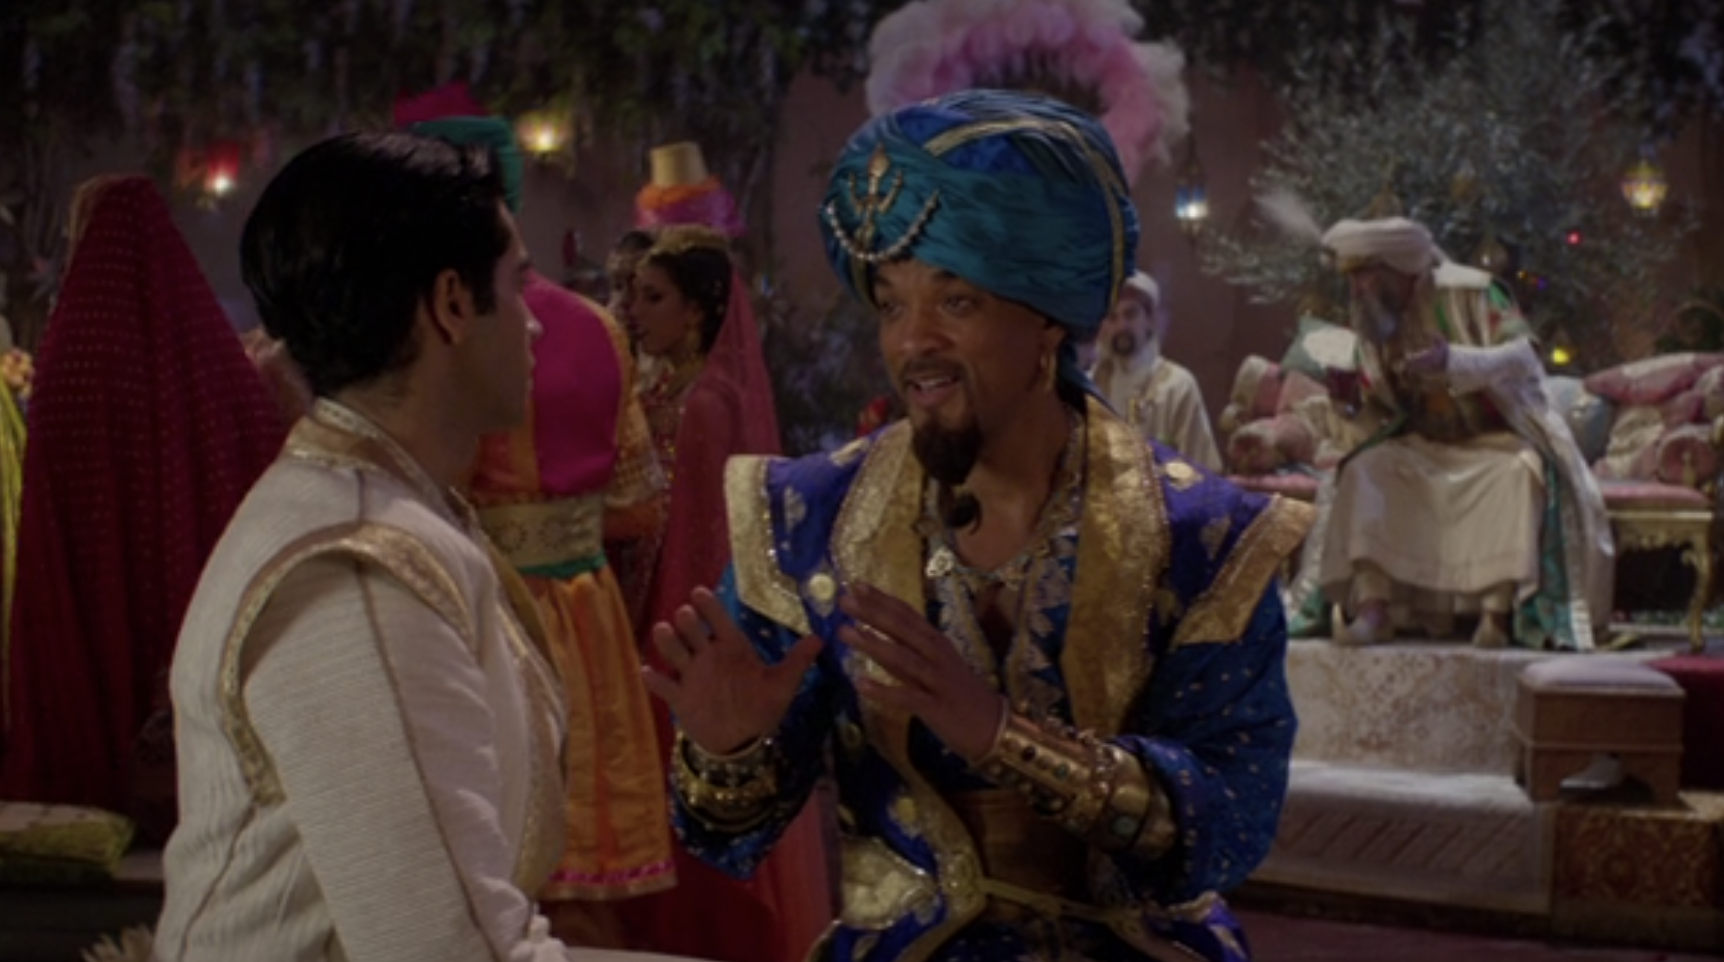 """Mena Massoud as Aladdin and Will Smith as Genie talking to each other during a party in the live-action """"Aladdin"""""""